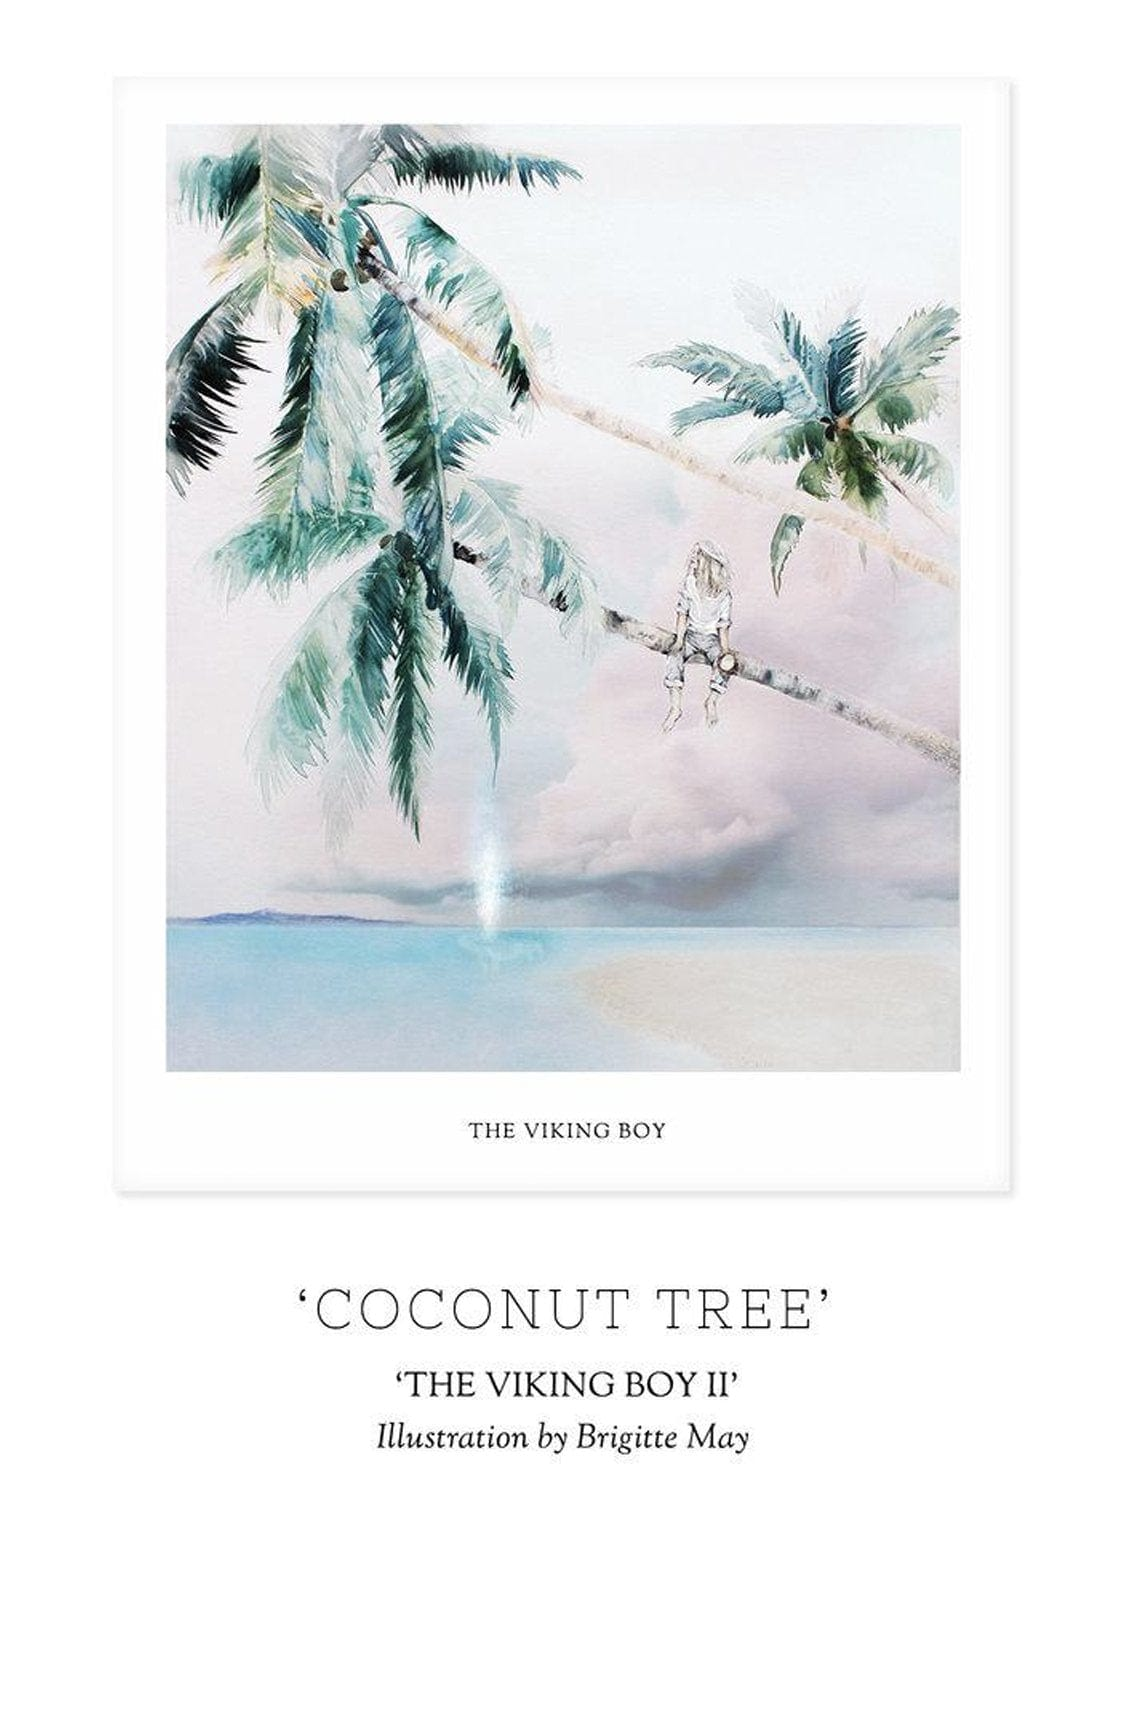 Unclebearskin Productions, THE VIKING BOY, CHAPTER II - 'COCONUT TREE' Print - Hello Little Birdie